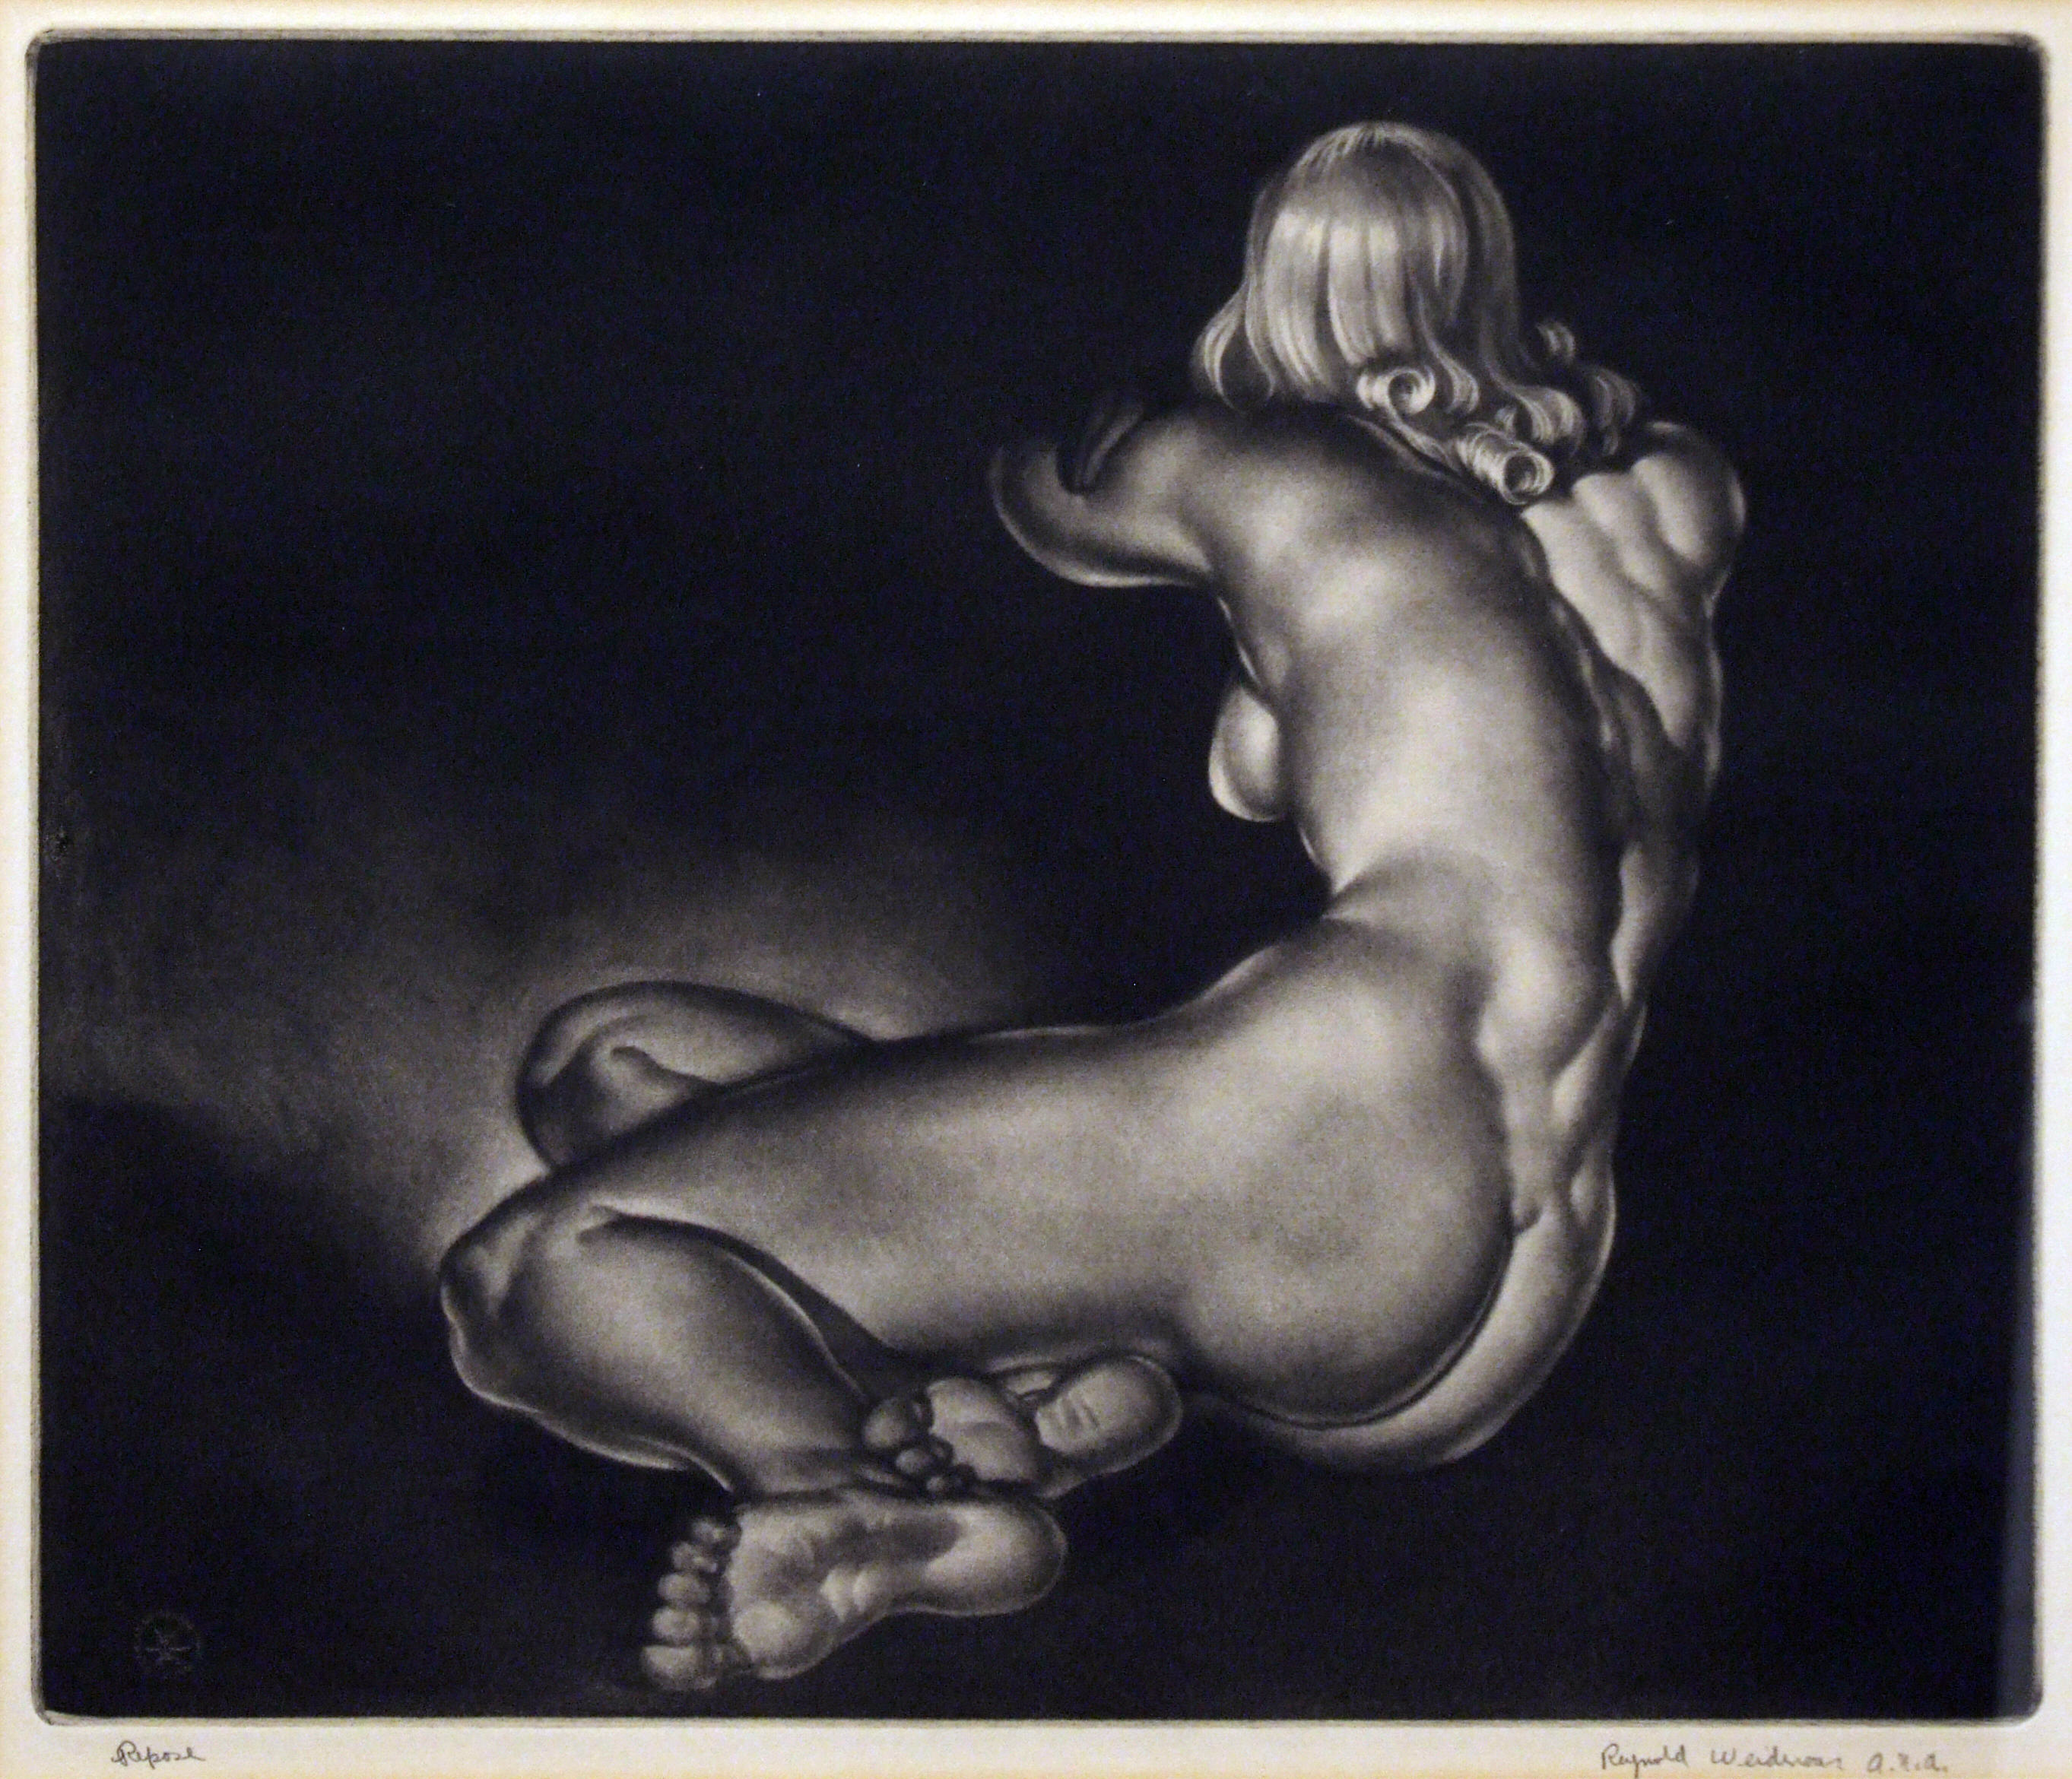 2005.005 | Reynold Weidenaar | REPOSE |  mezzotint | 10-3/4 x 13"